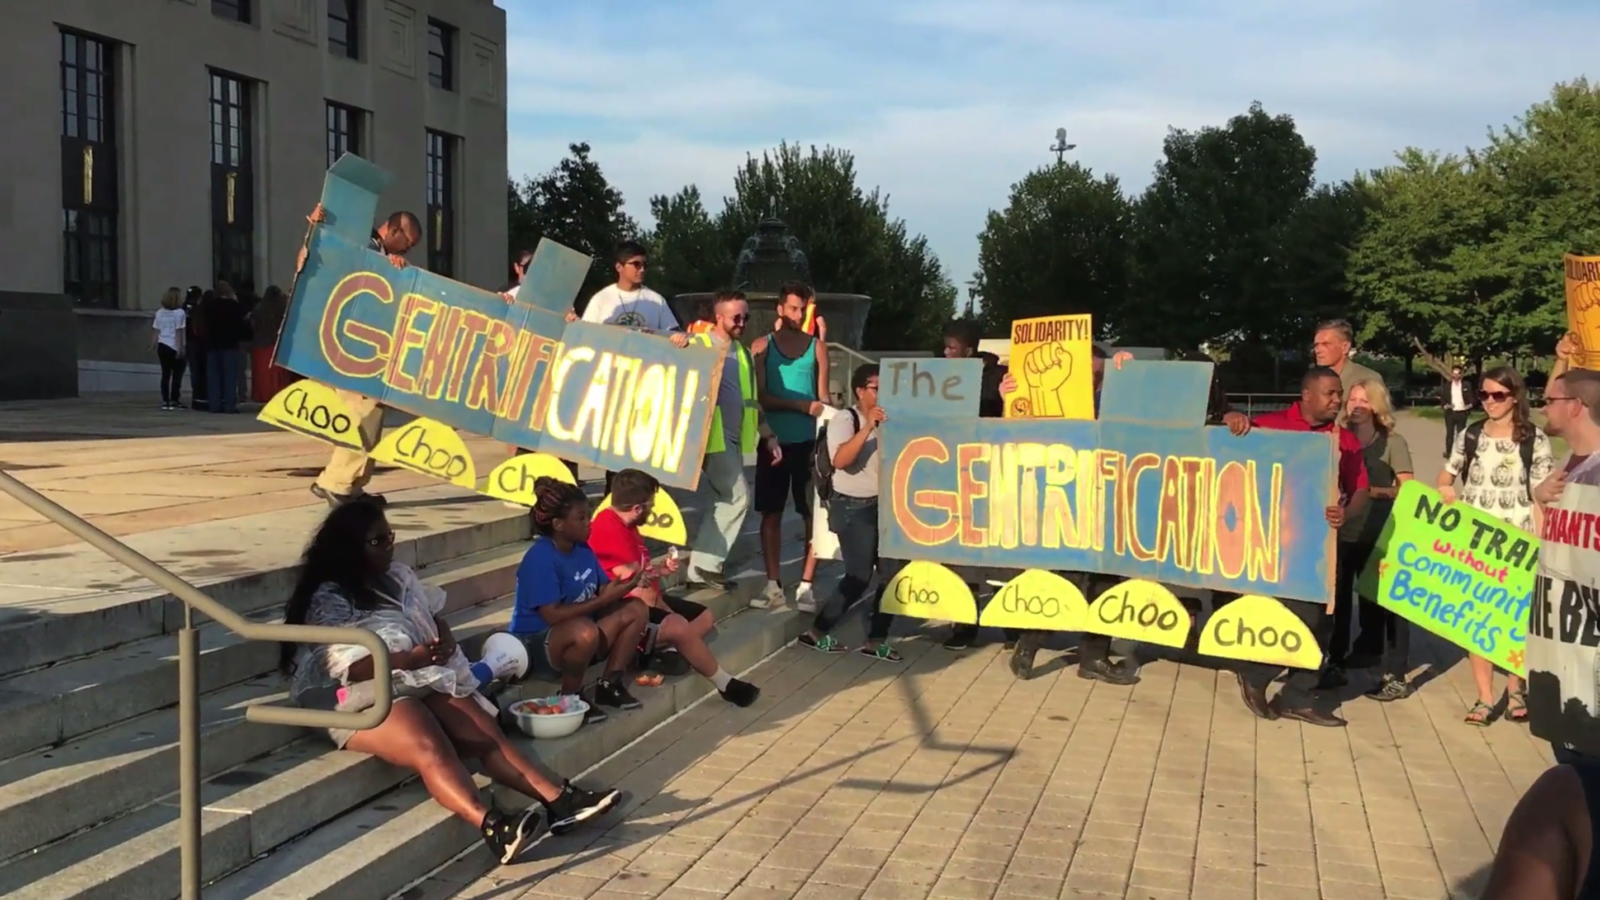 The struggle against gentrification in Nashville, Tennessee